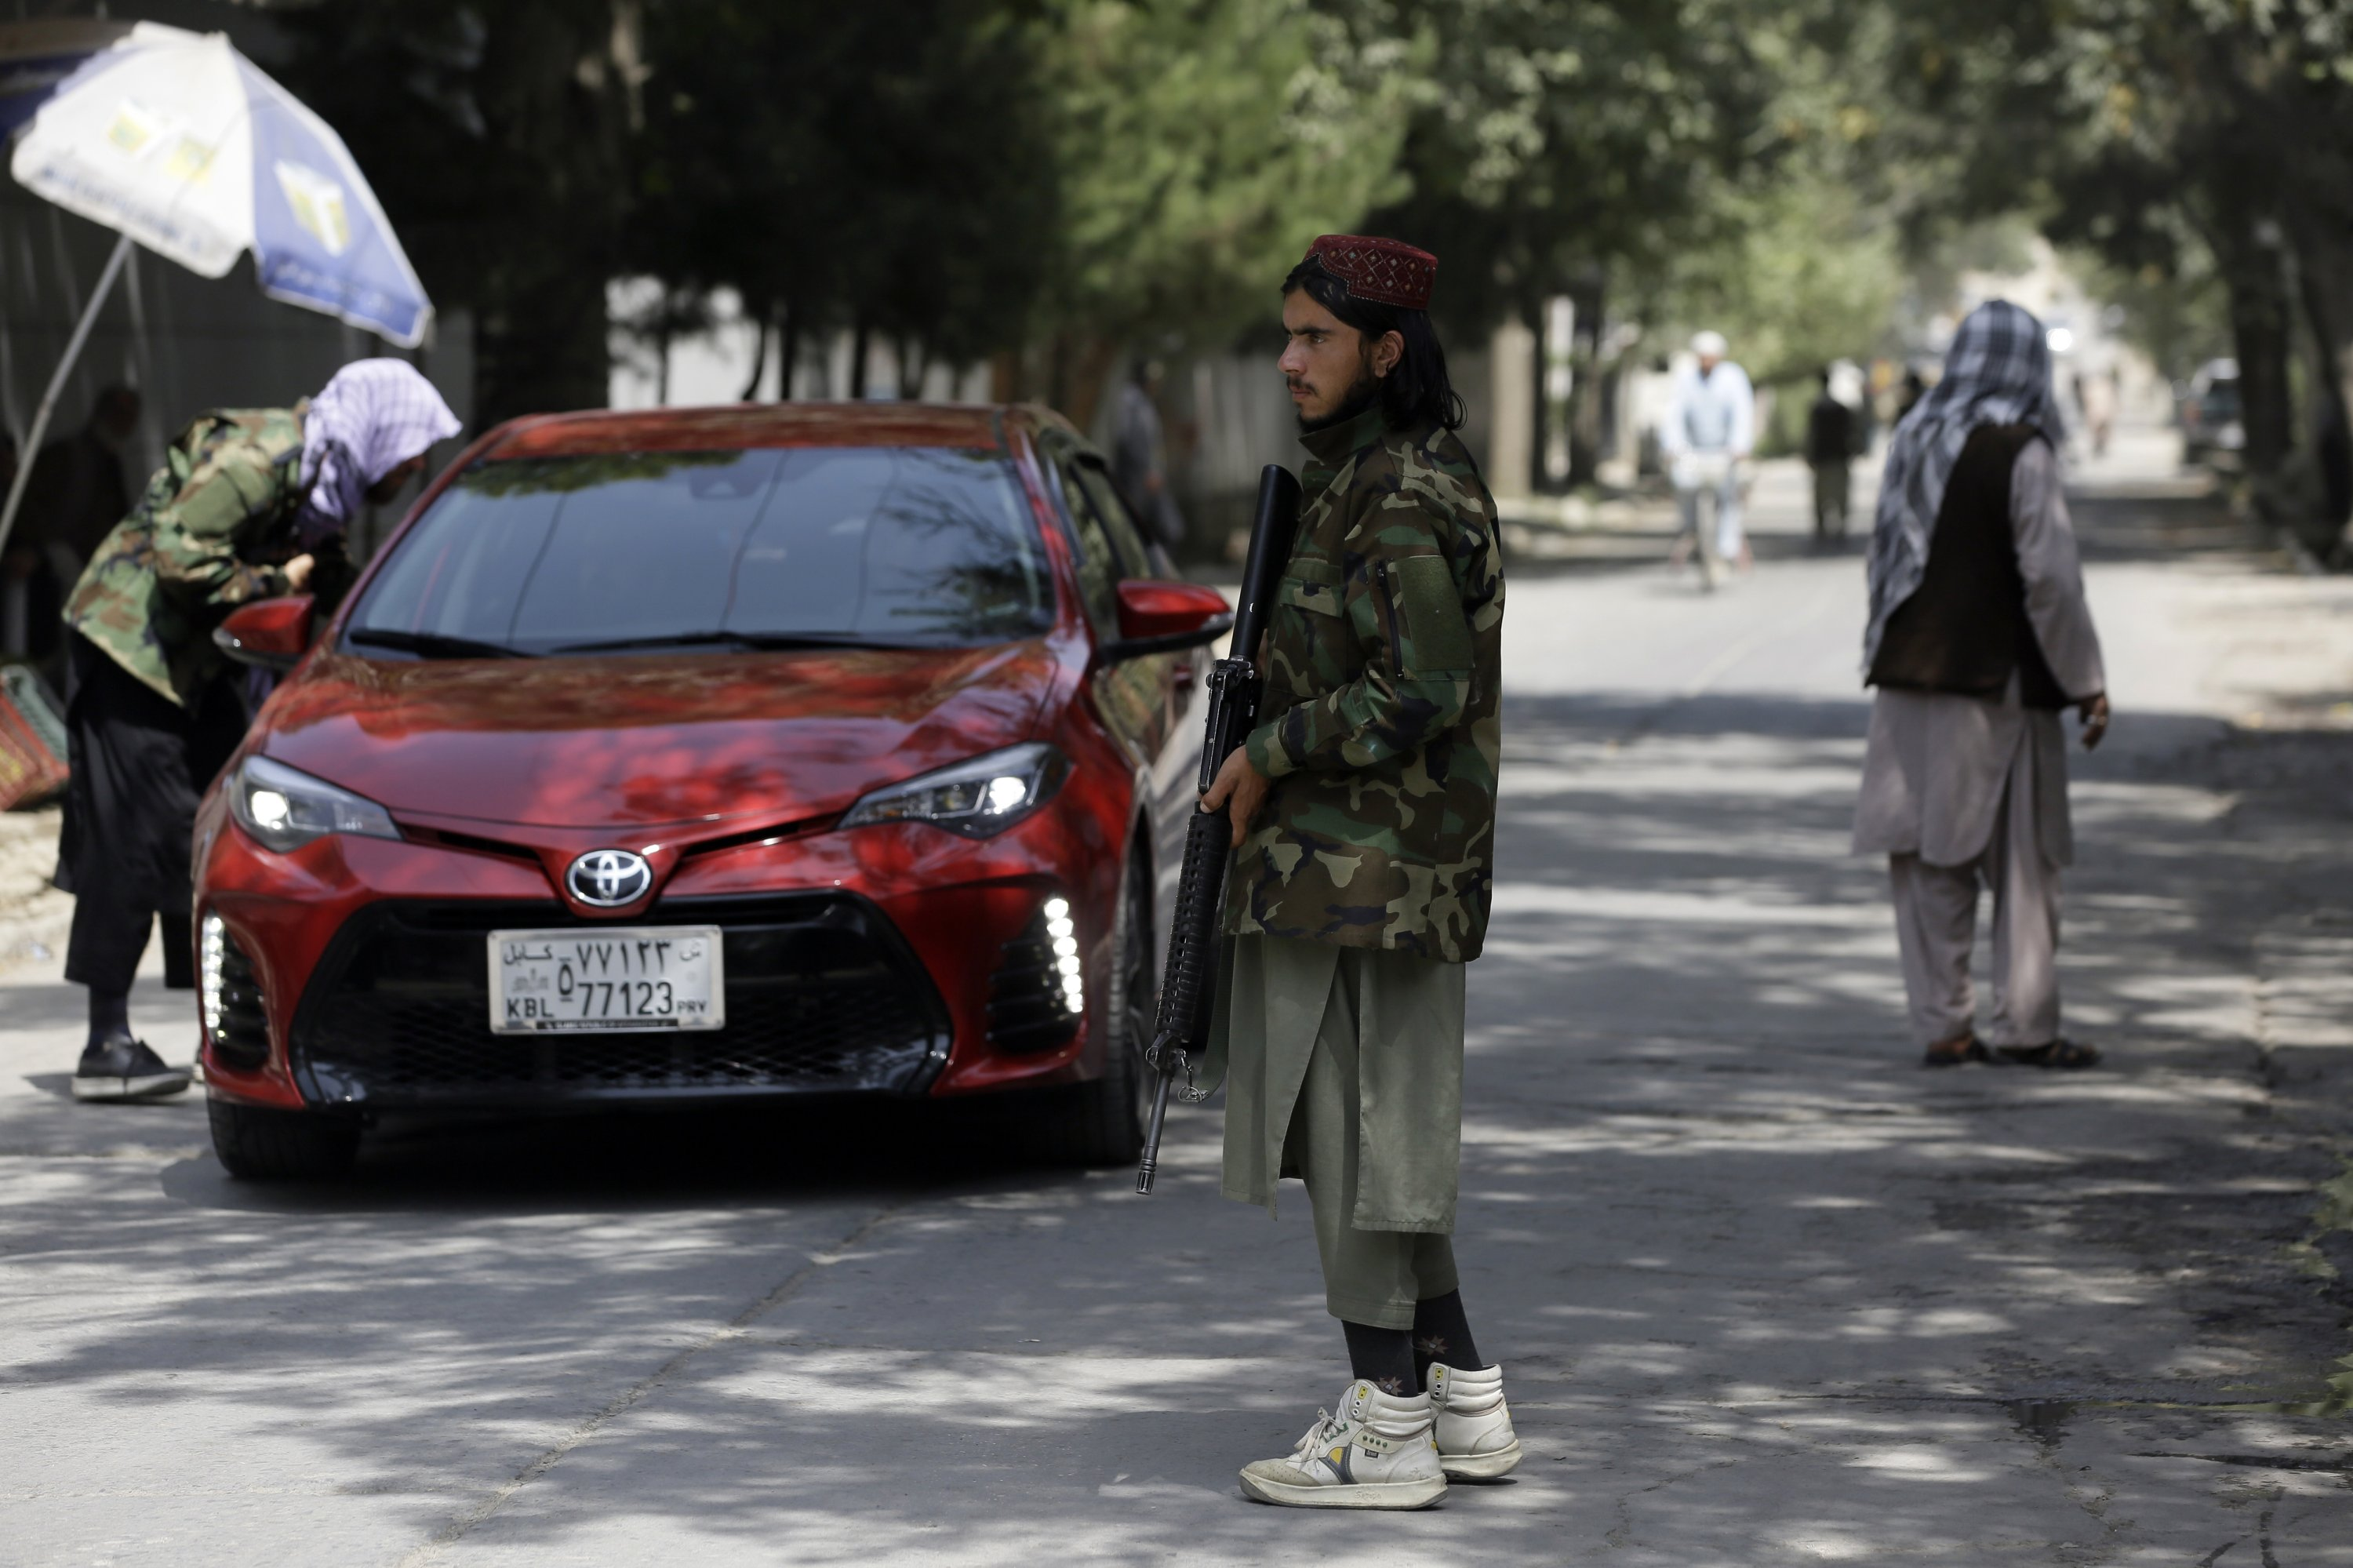 Taliban fighters search a vehicle at a checkpoint on a road in the Wazir Akbar Khan neighborhood in Kabul, Afghanistan, Aug. 22, 2021. (AP Photo)